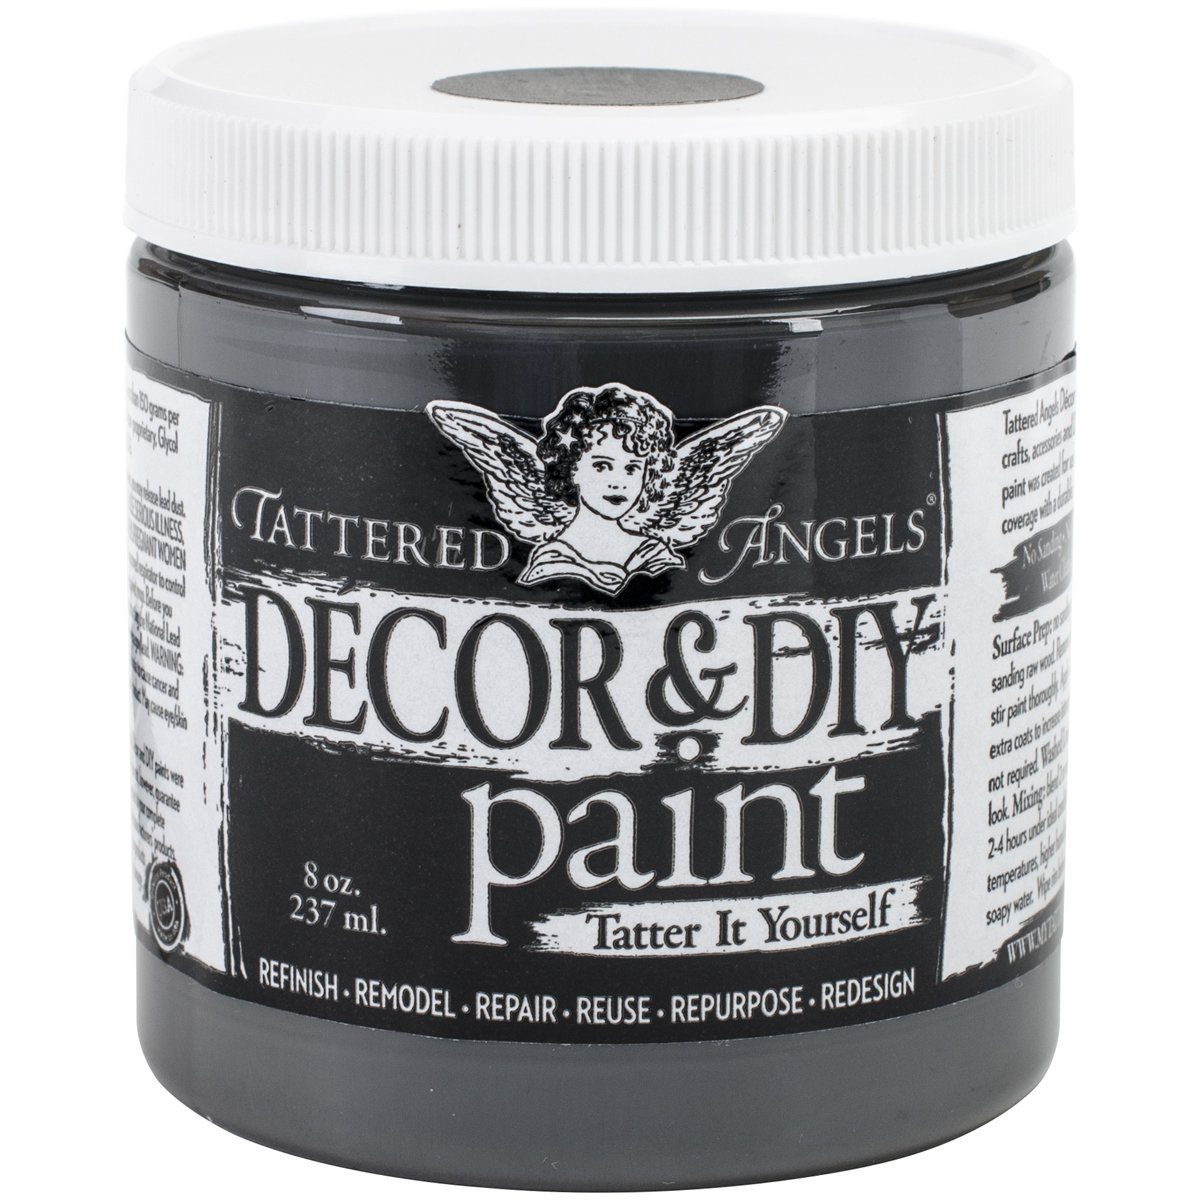 Tattered Angels DIY & Decor Paint